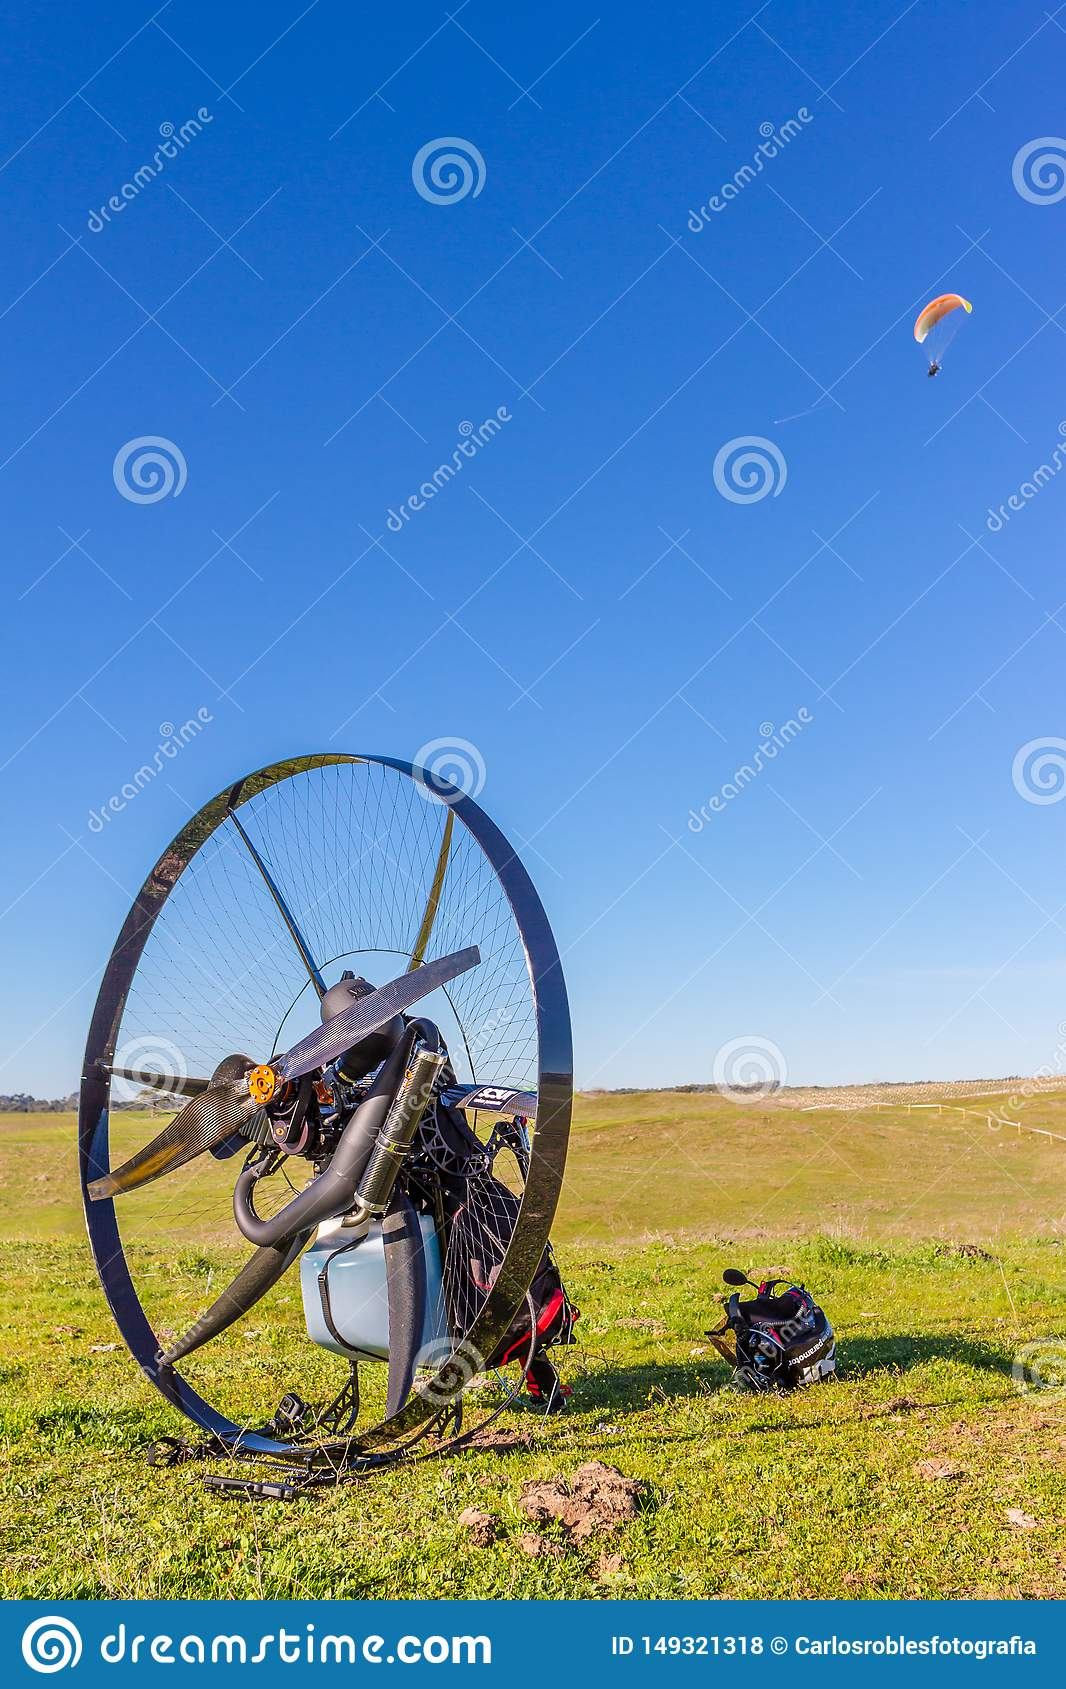 Paramotor basket in the field